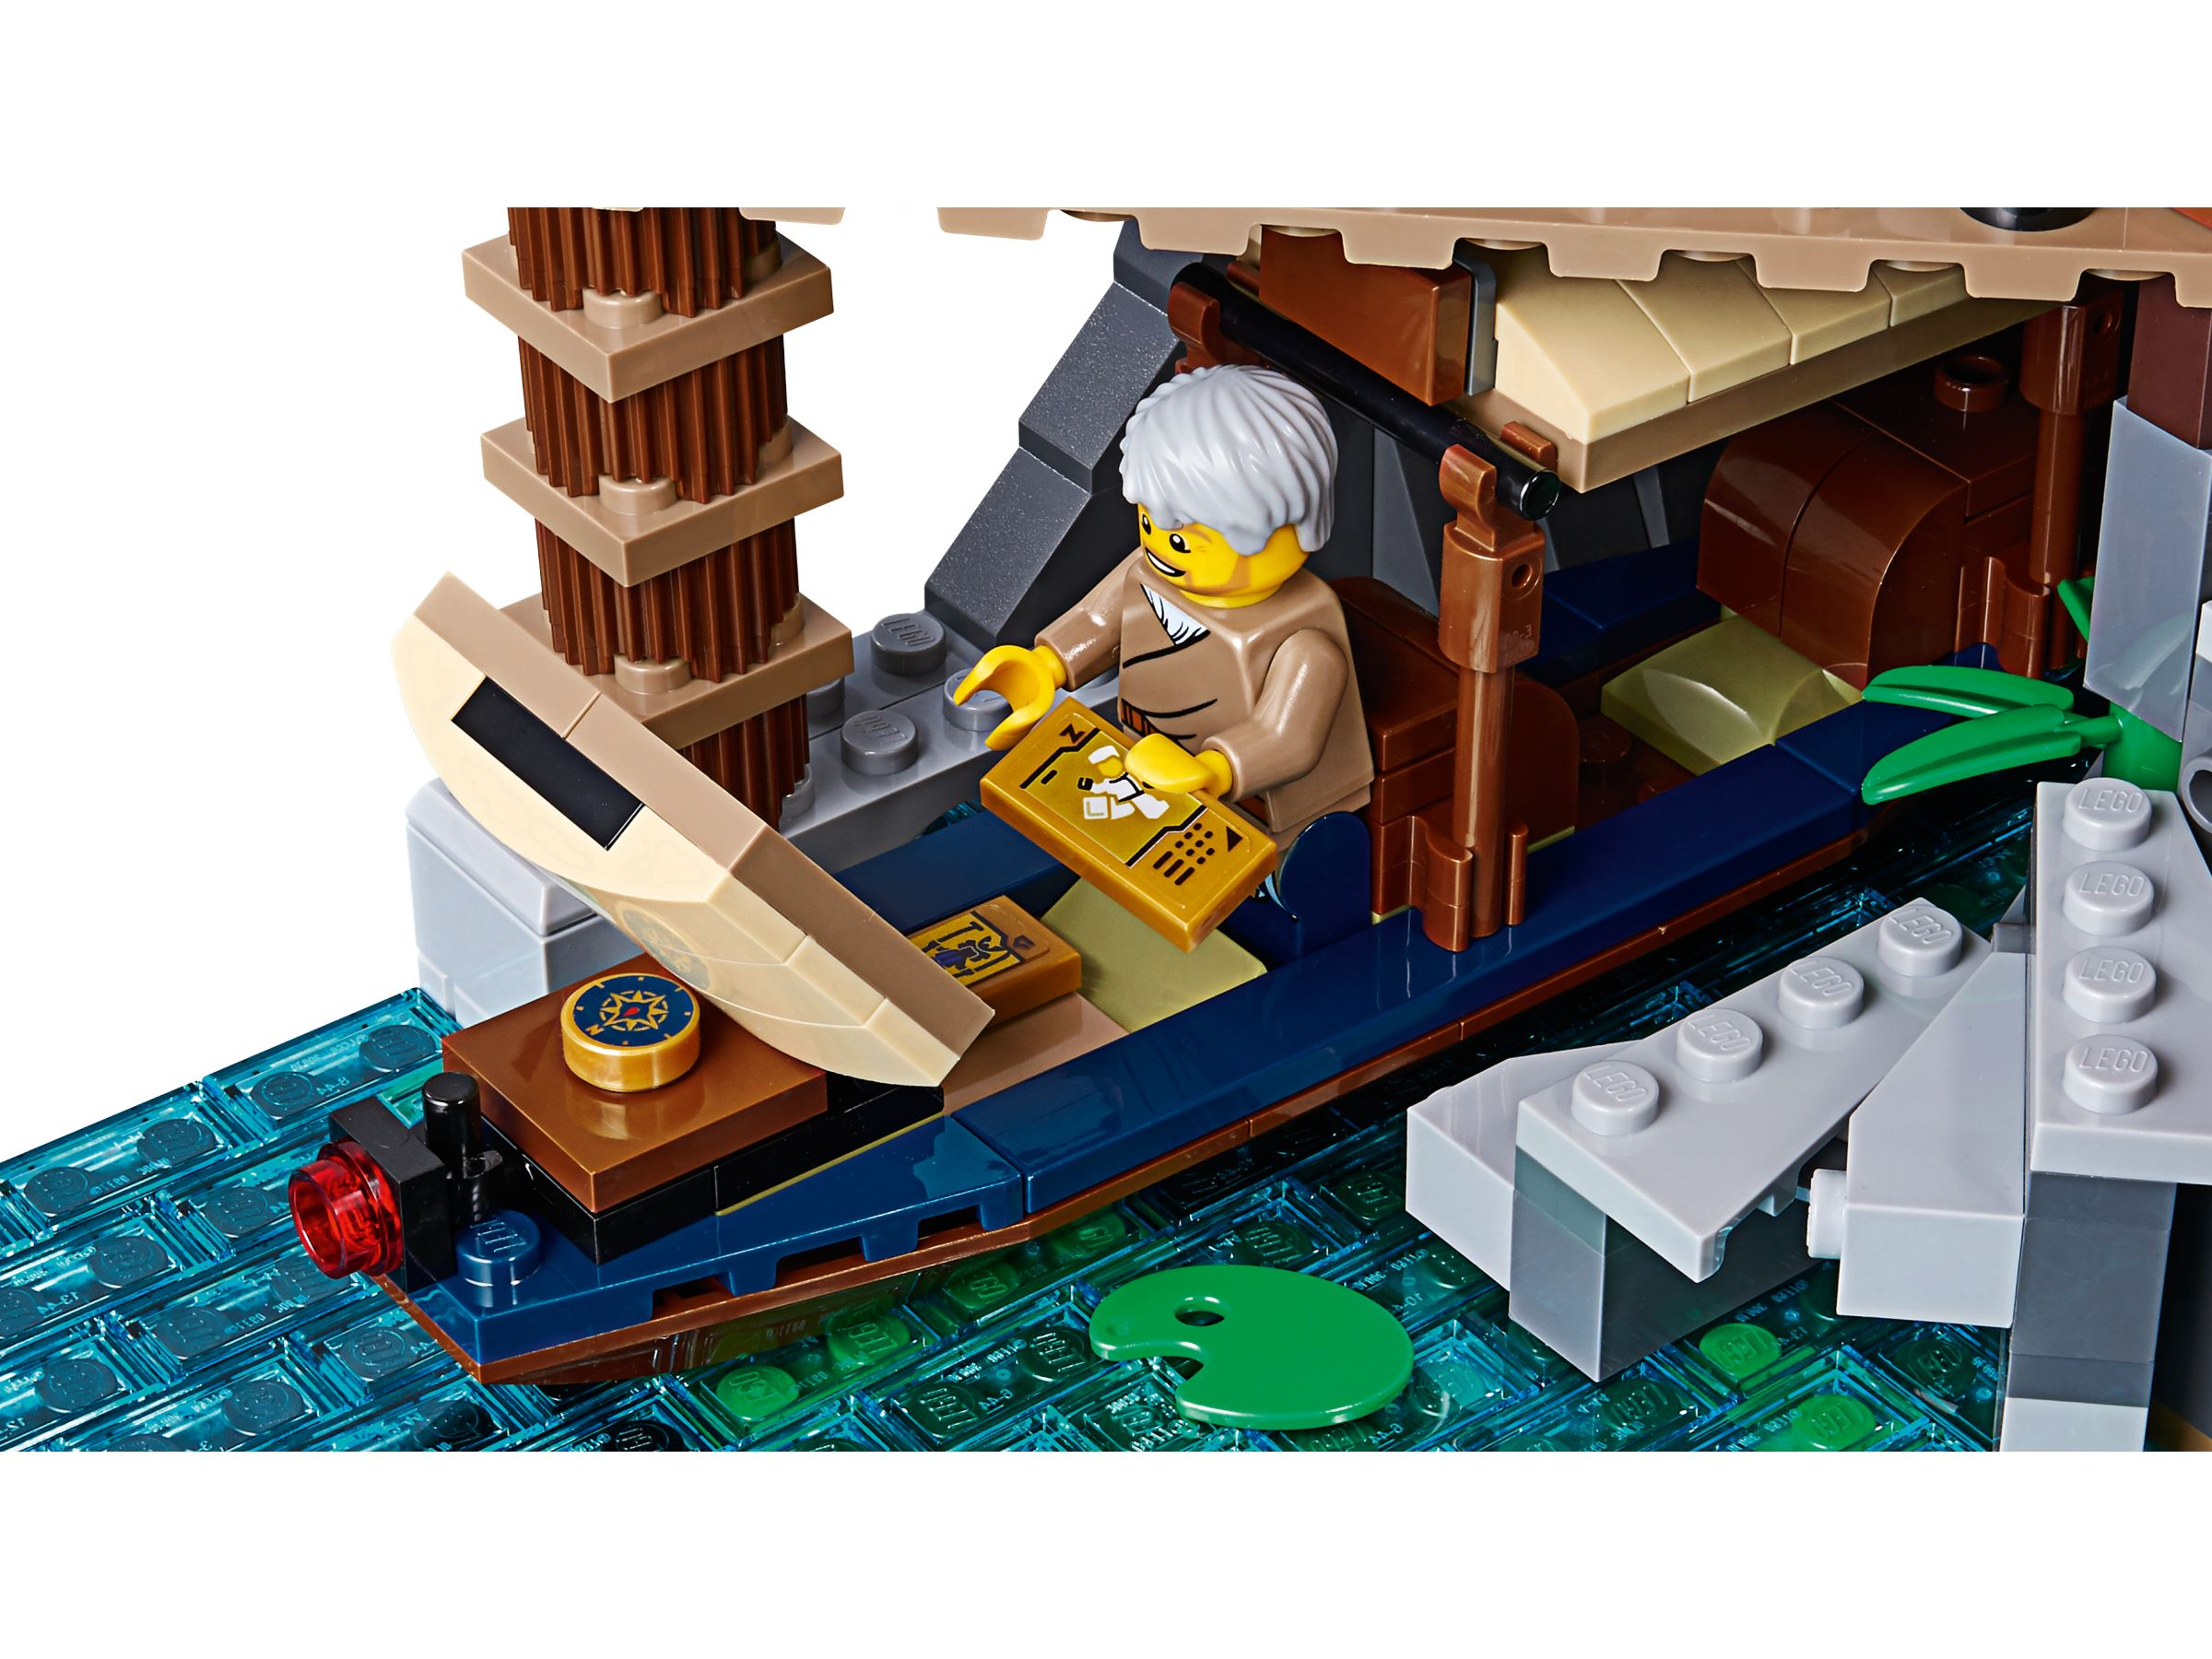 LEGO The LEGO Ninjago Movie 70657 Ninjago City Hafen LEGO_70657_alt3.jpg